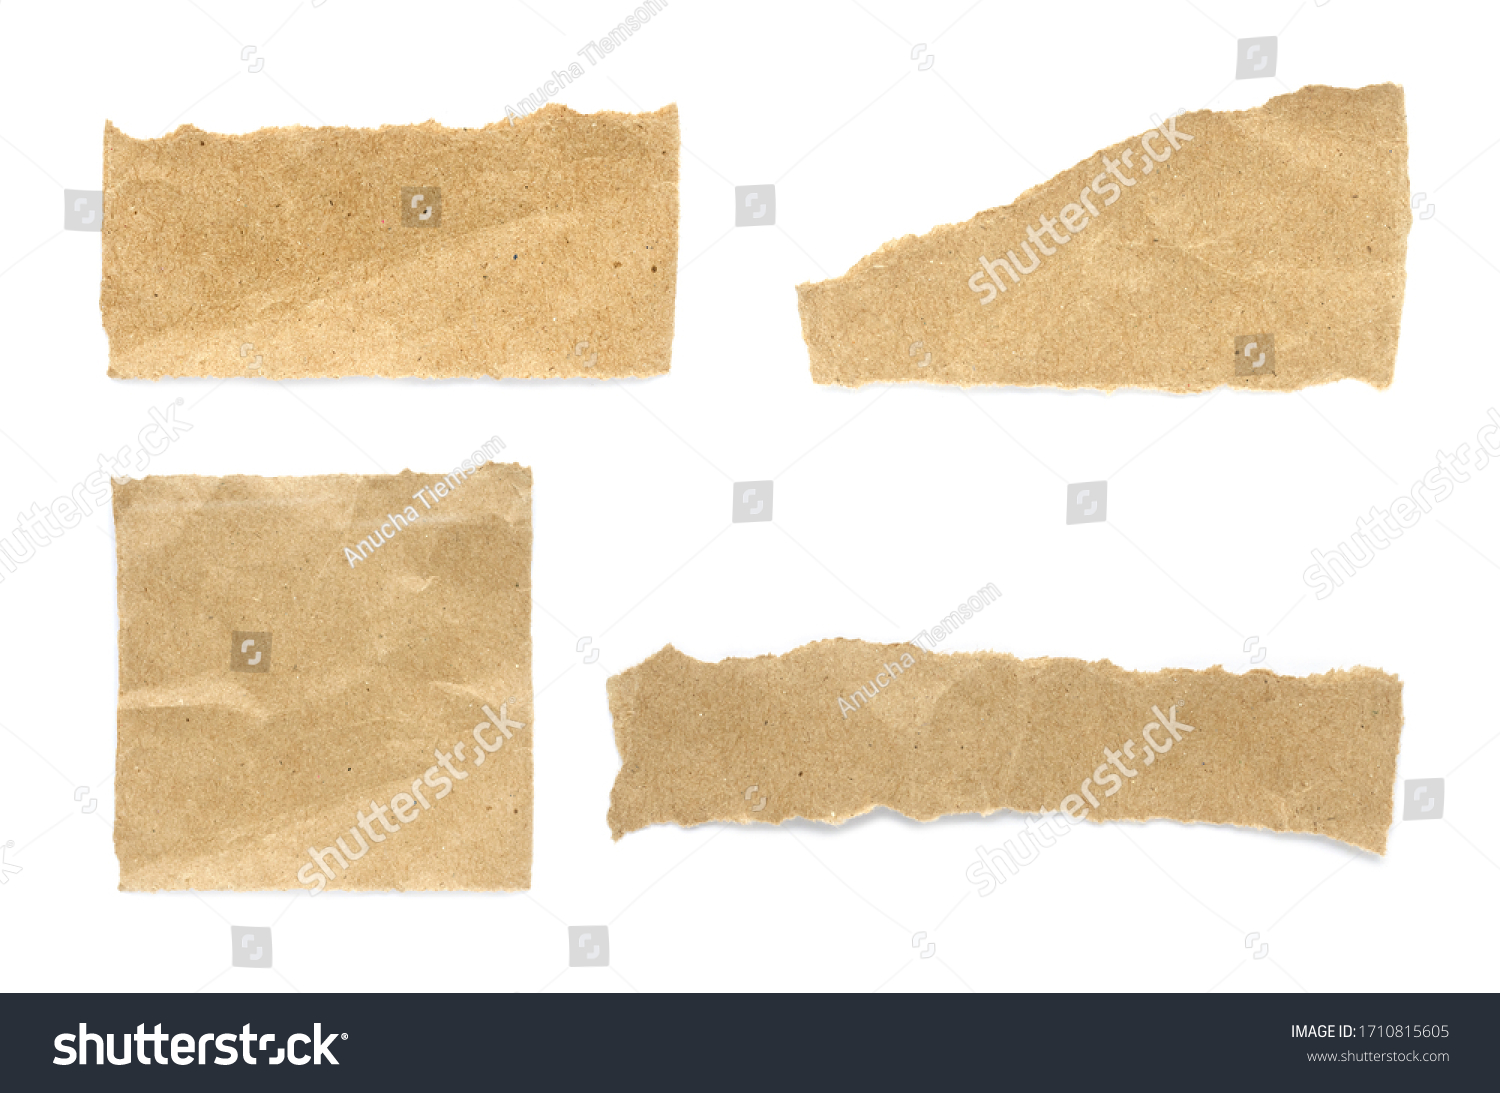 Recycled paper craft stick on a white background. Brown paper torn or ripped pieces of paper isolated on white background. #1710815605